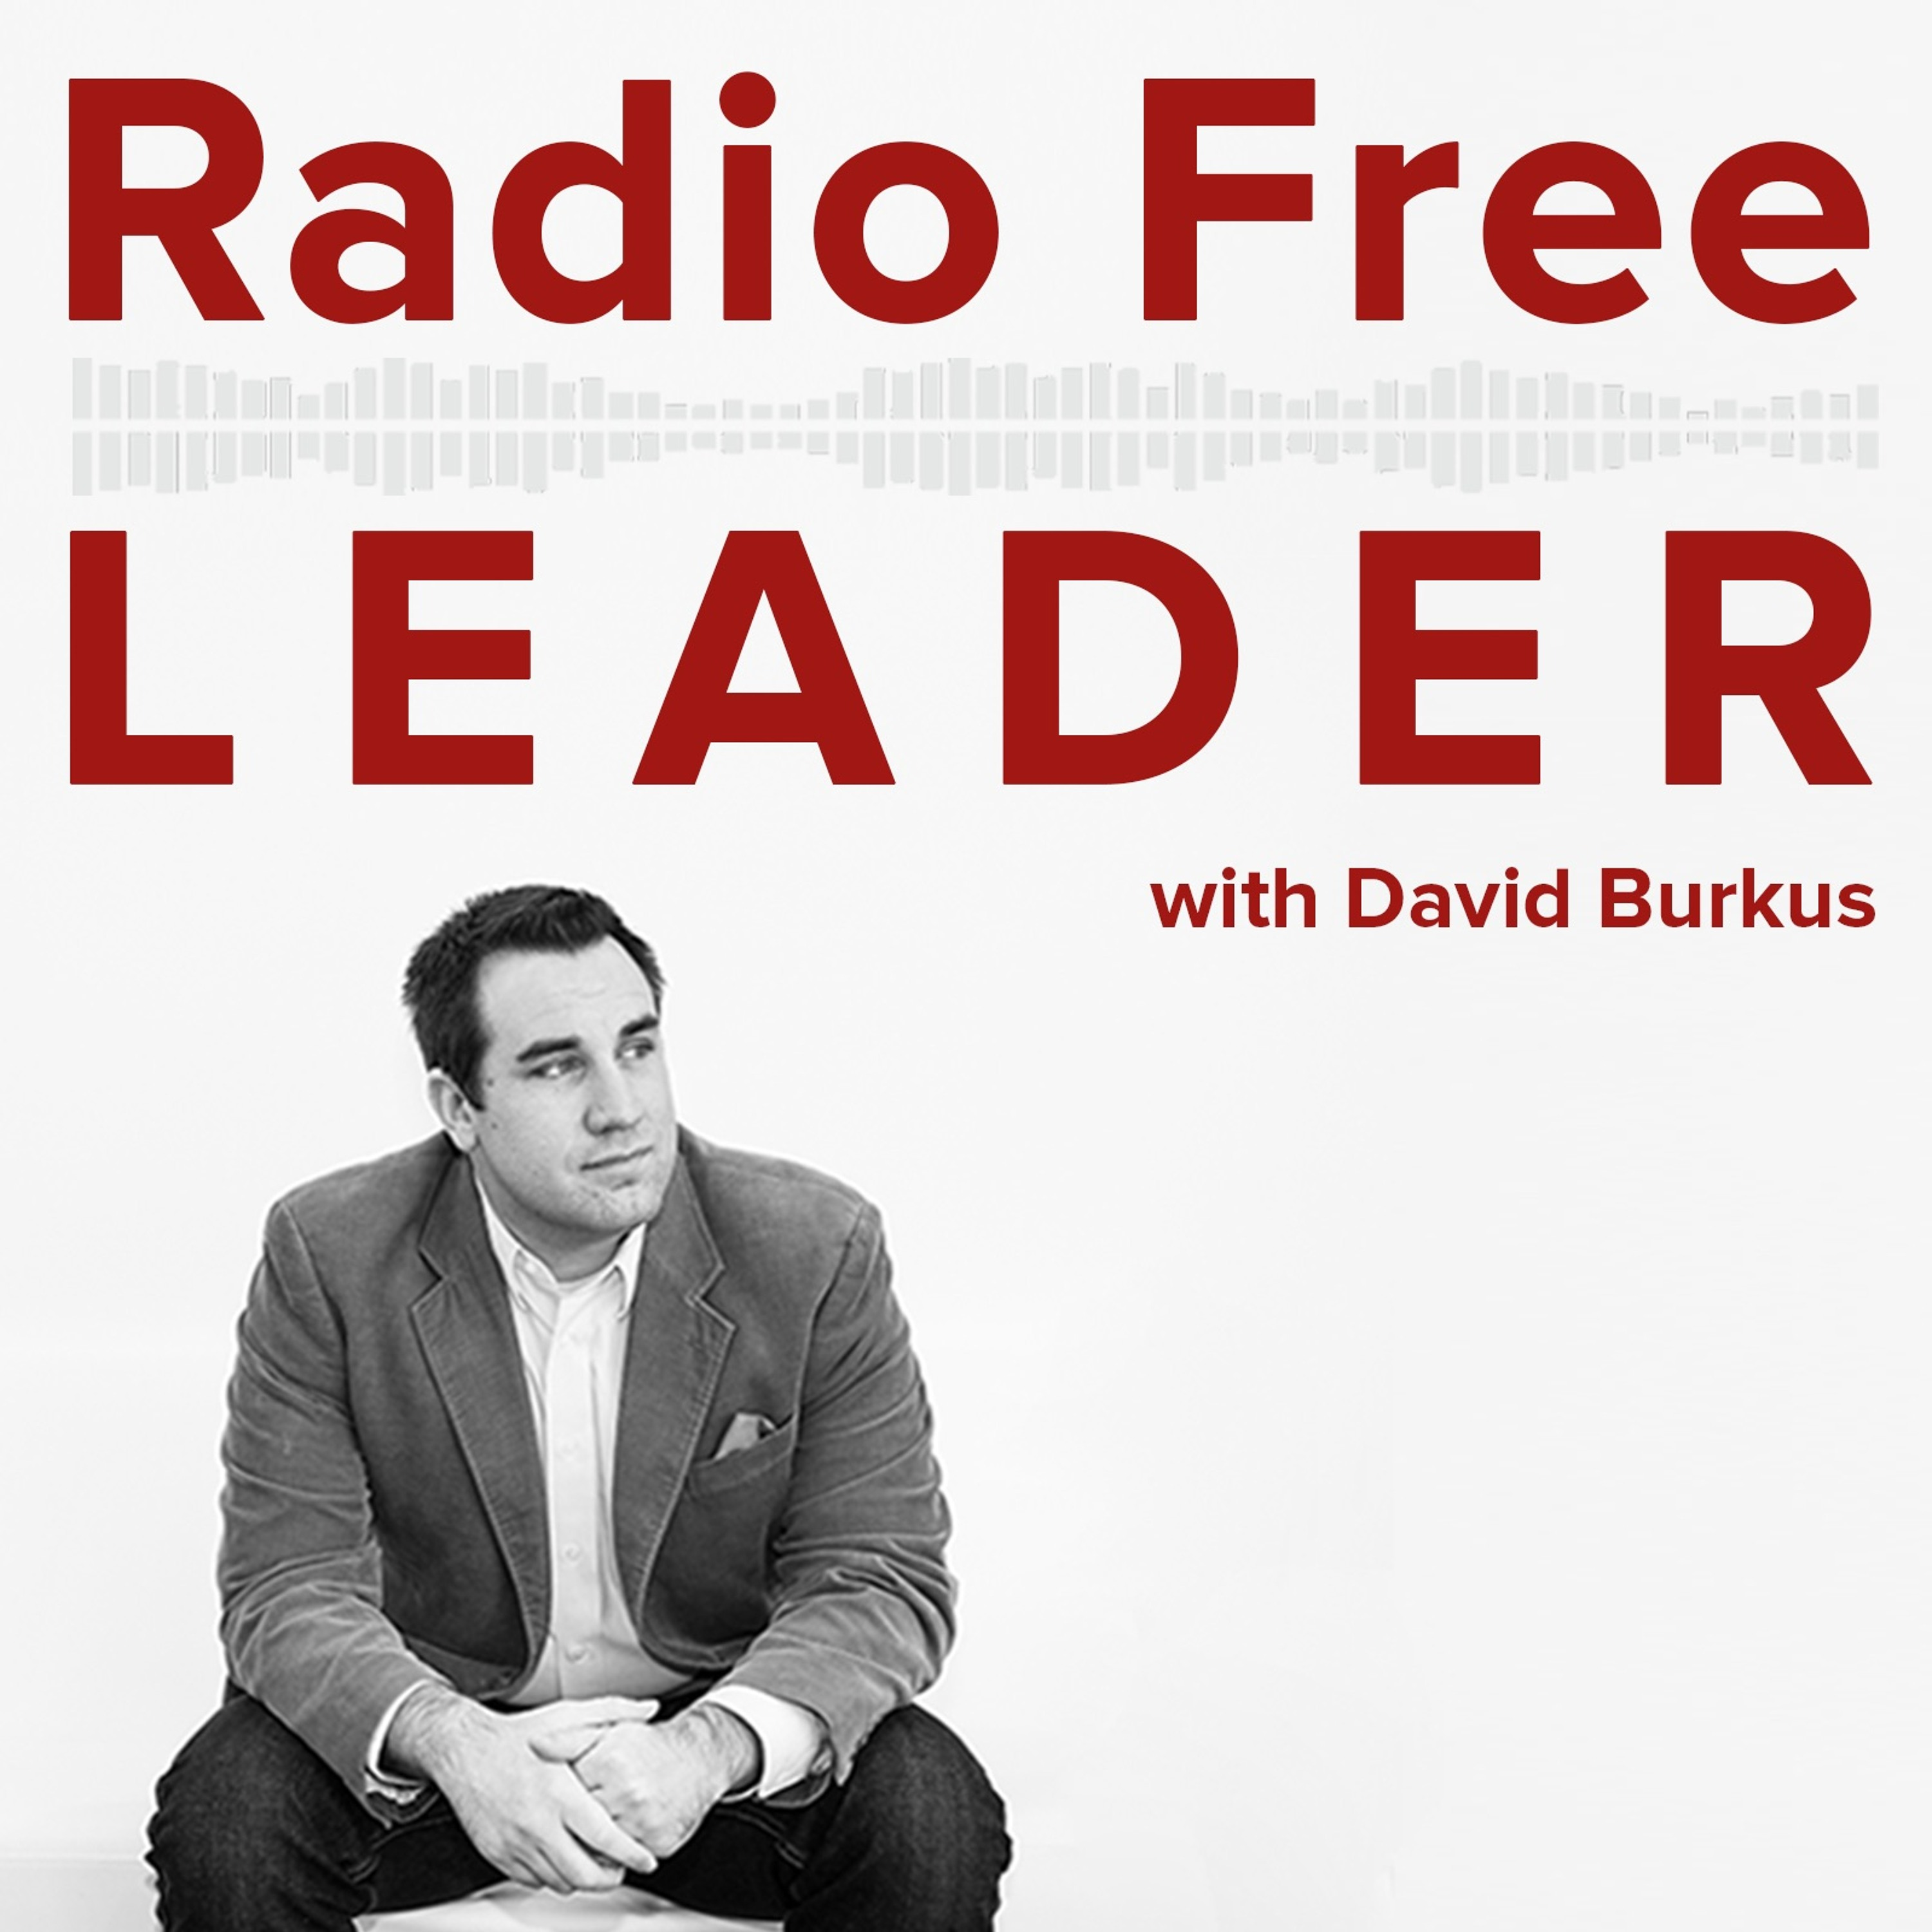 1000   A Special Announcement from David Burkus on Radio Free Leader